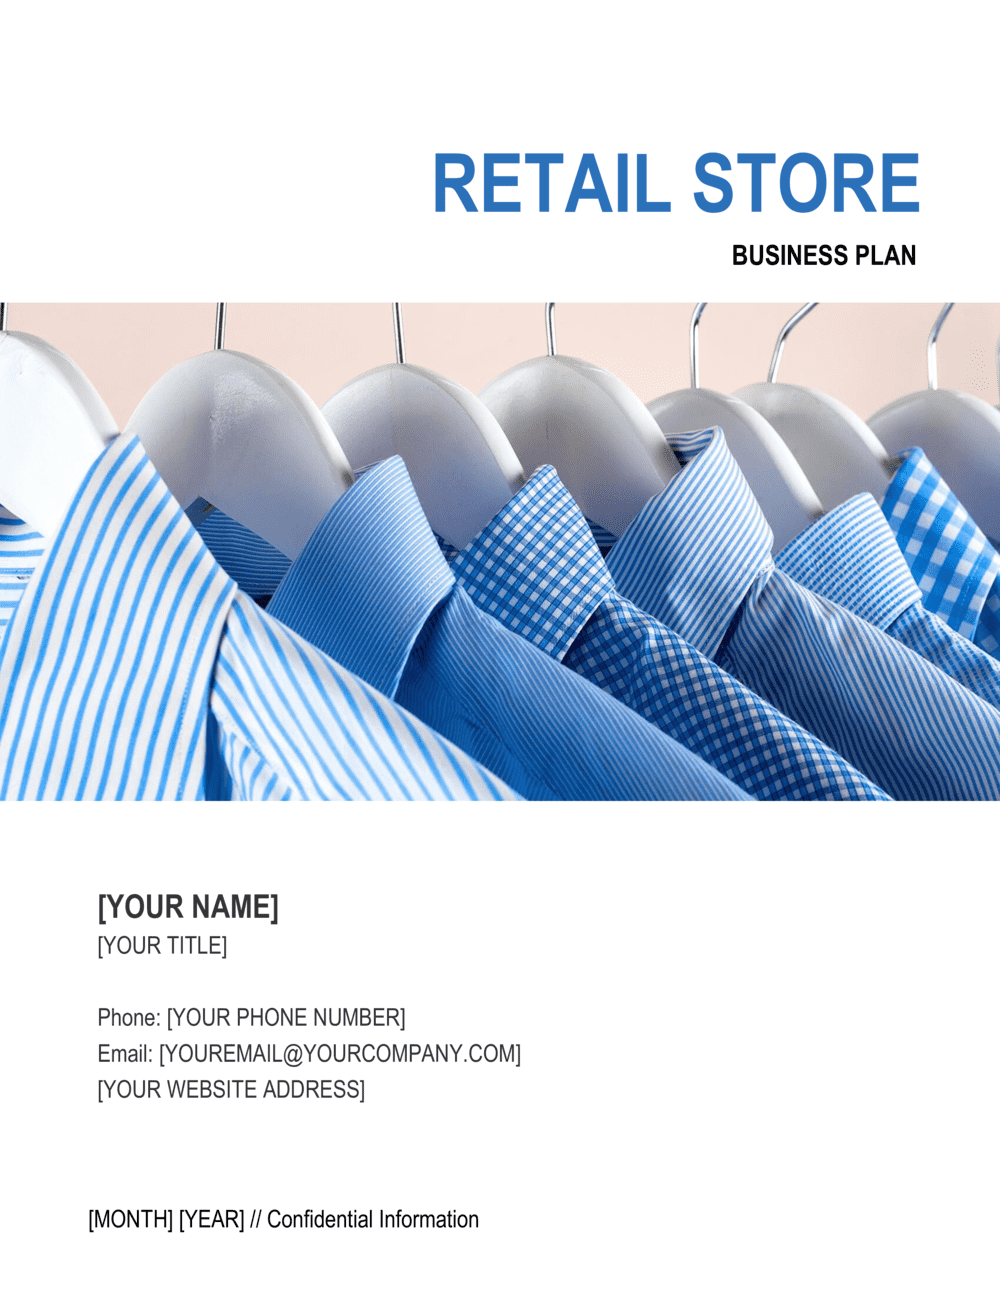 Business-in-a-Box's Retail Store Business Plan 2 Template